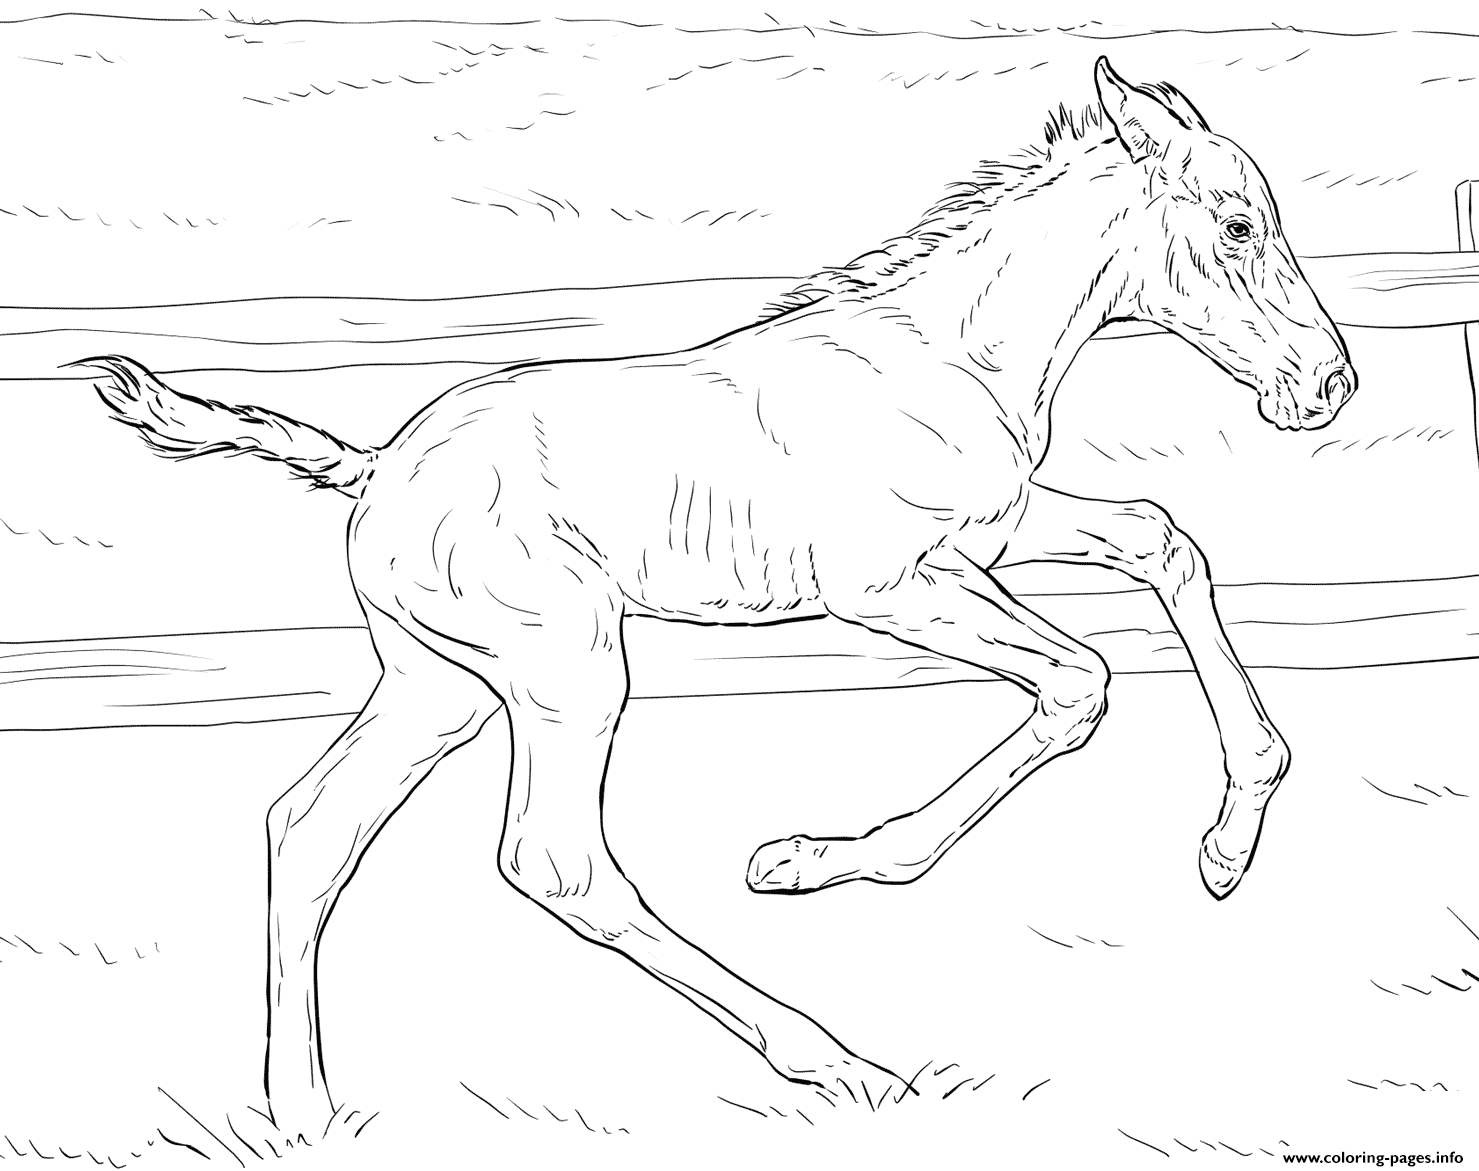 Horse Bucking Foal coloring pages